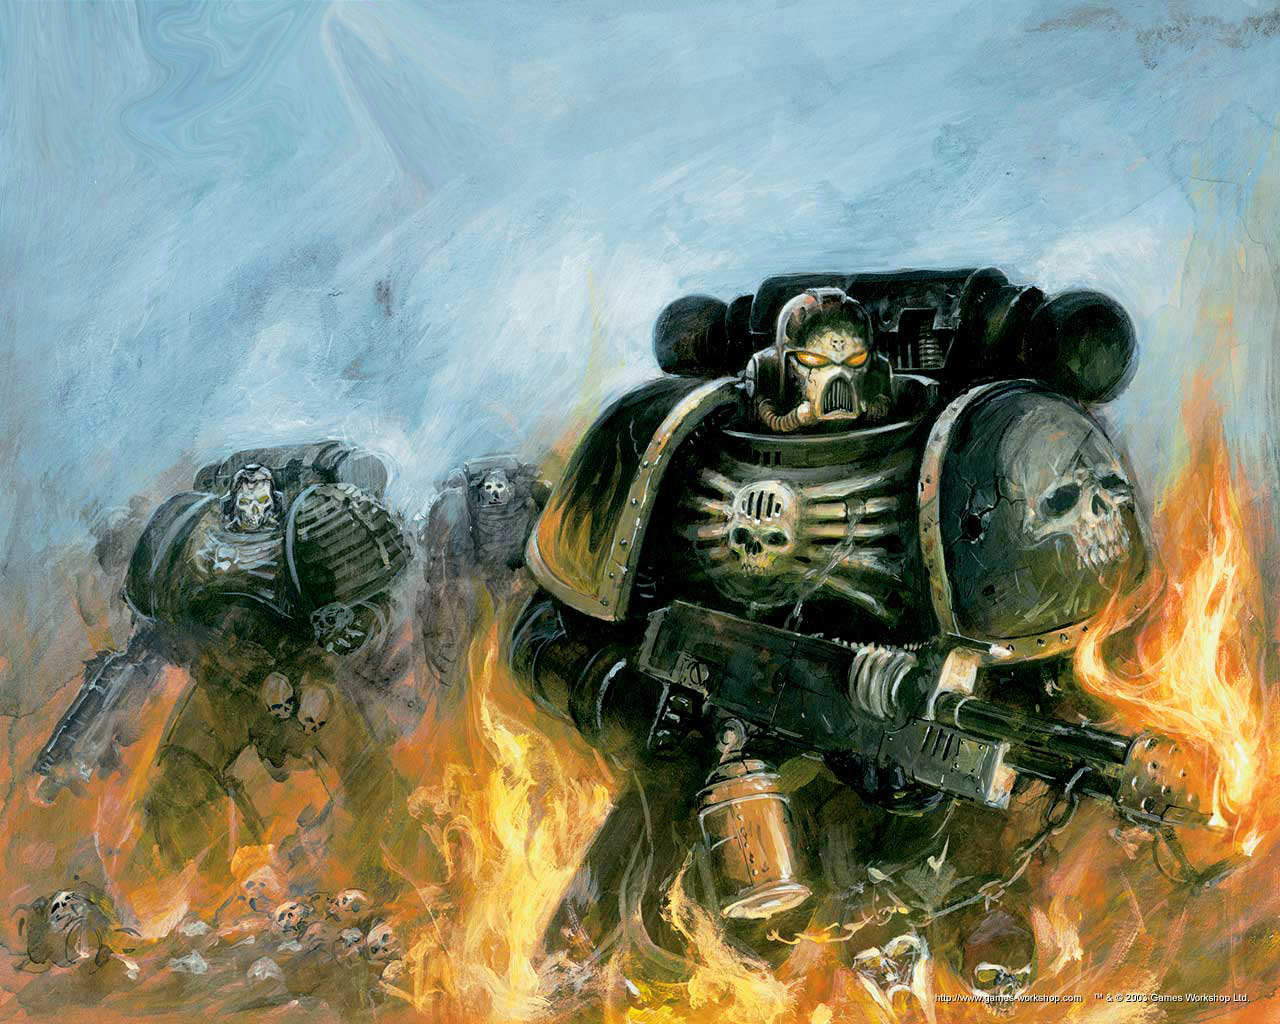 Warhammer 40,000 Space Marine wallpapers or desktop